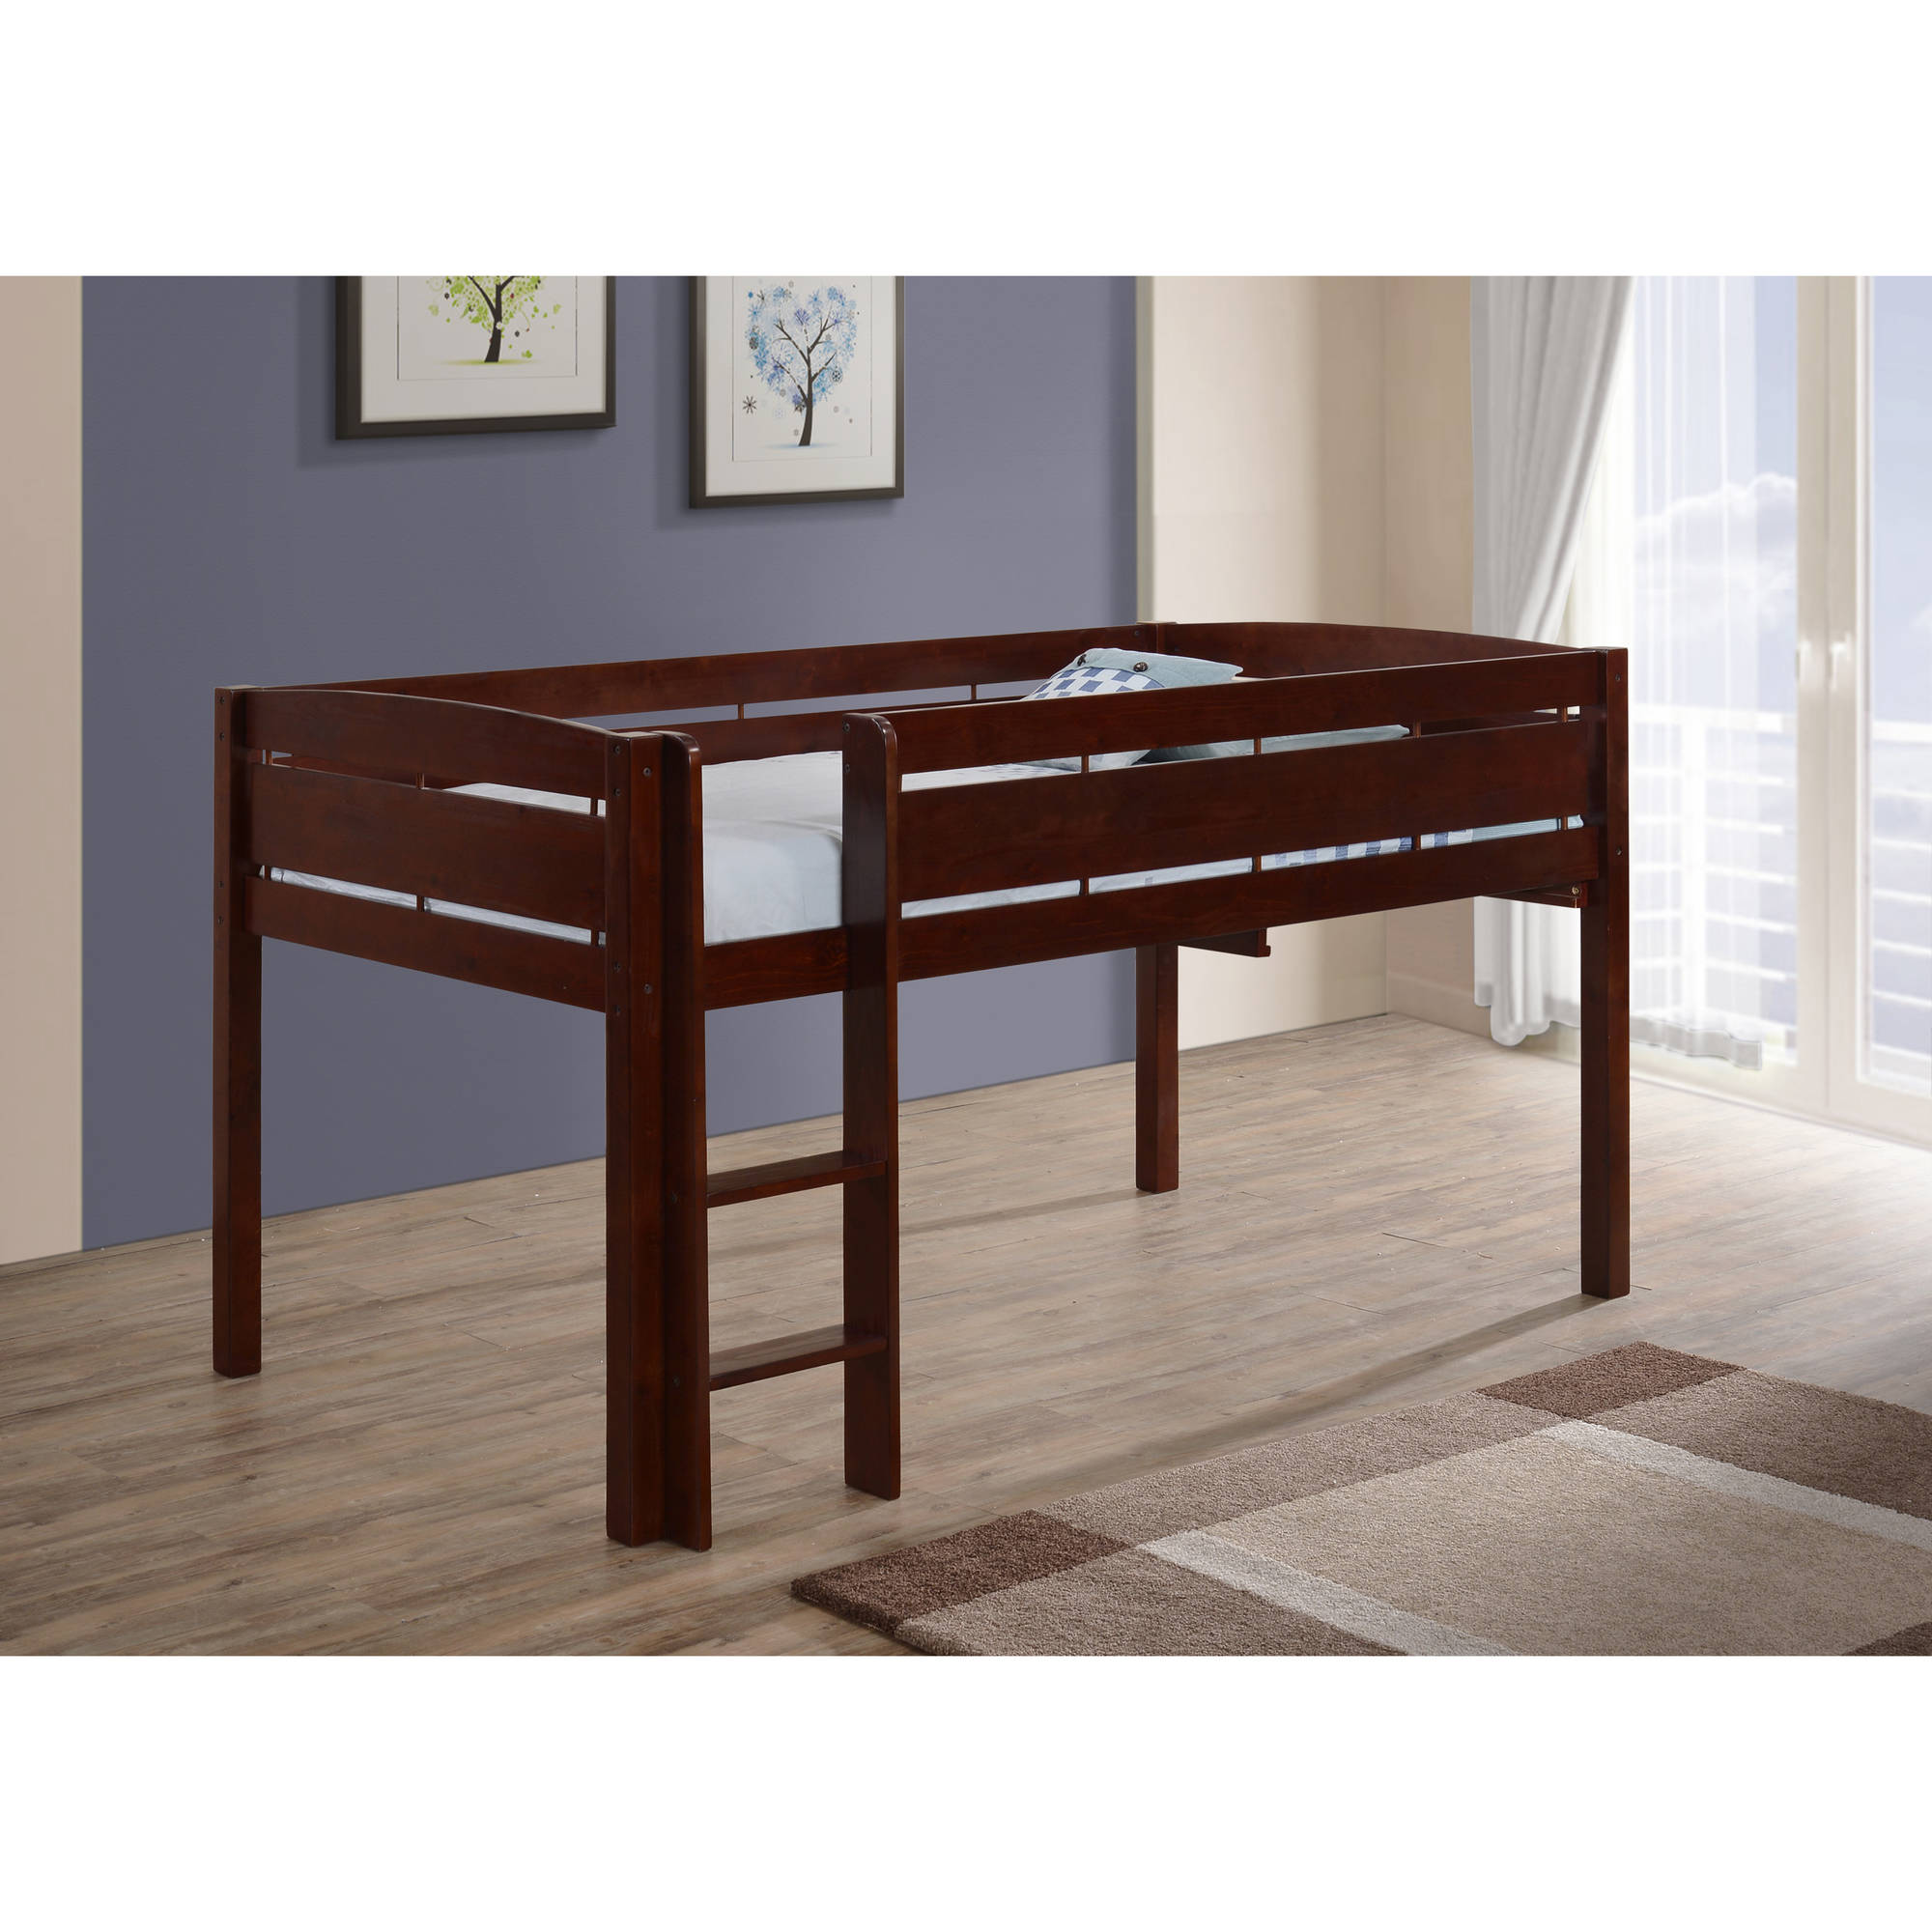 Canwood Whistler Junior Loft Bed, Cherry